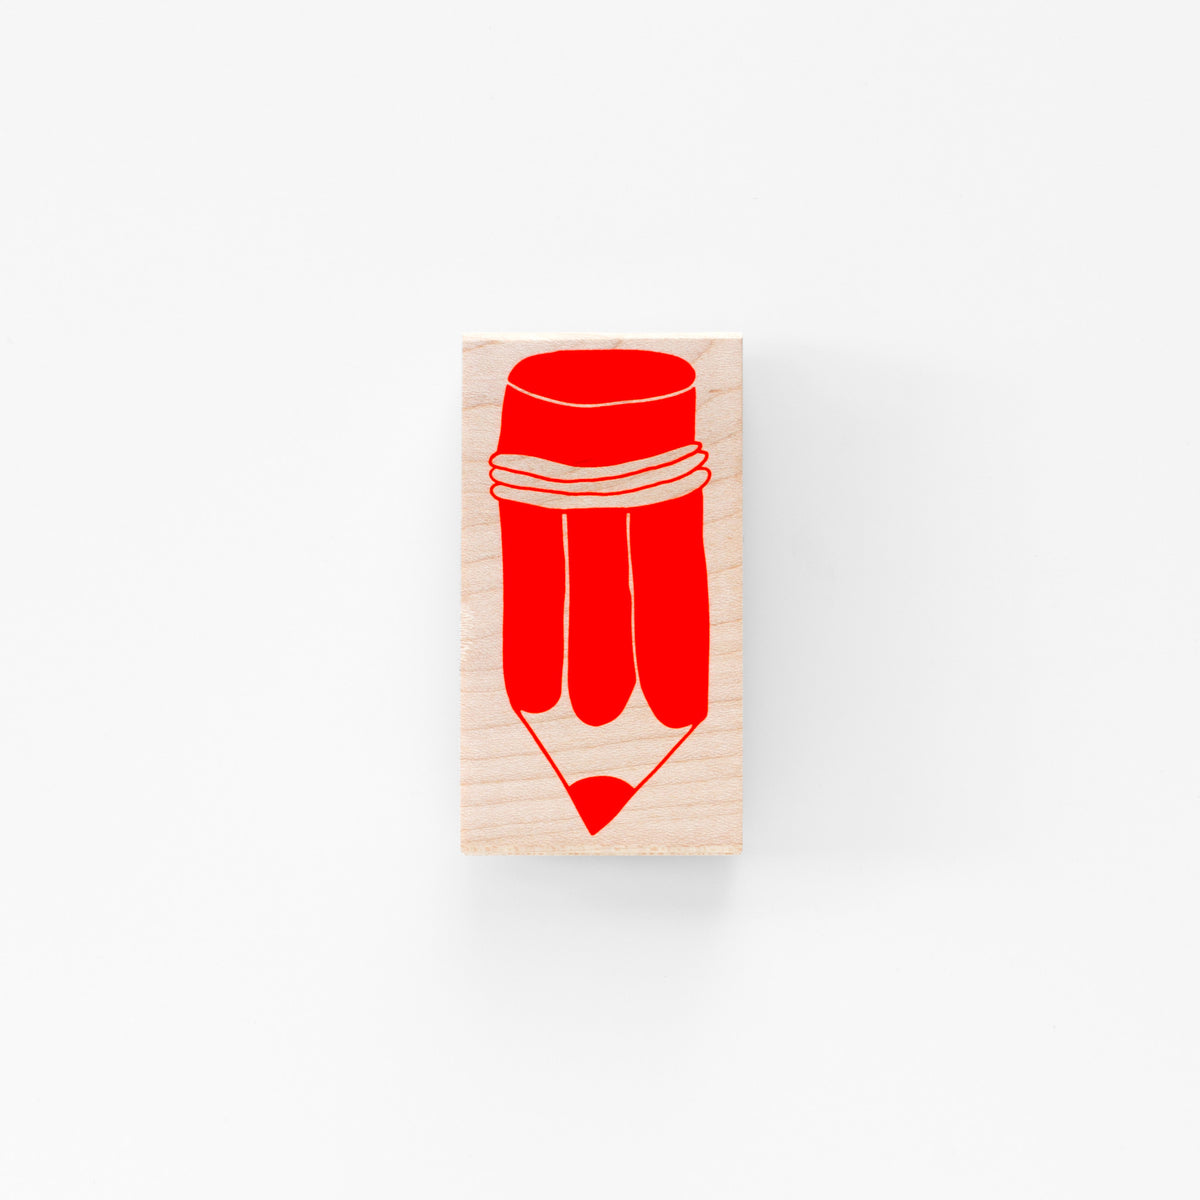 Wood mounted rubber stamp featuring a bright red pencil graphic